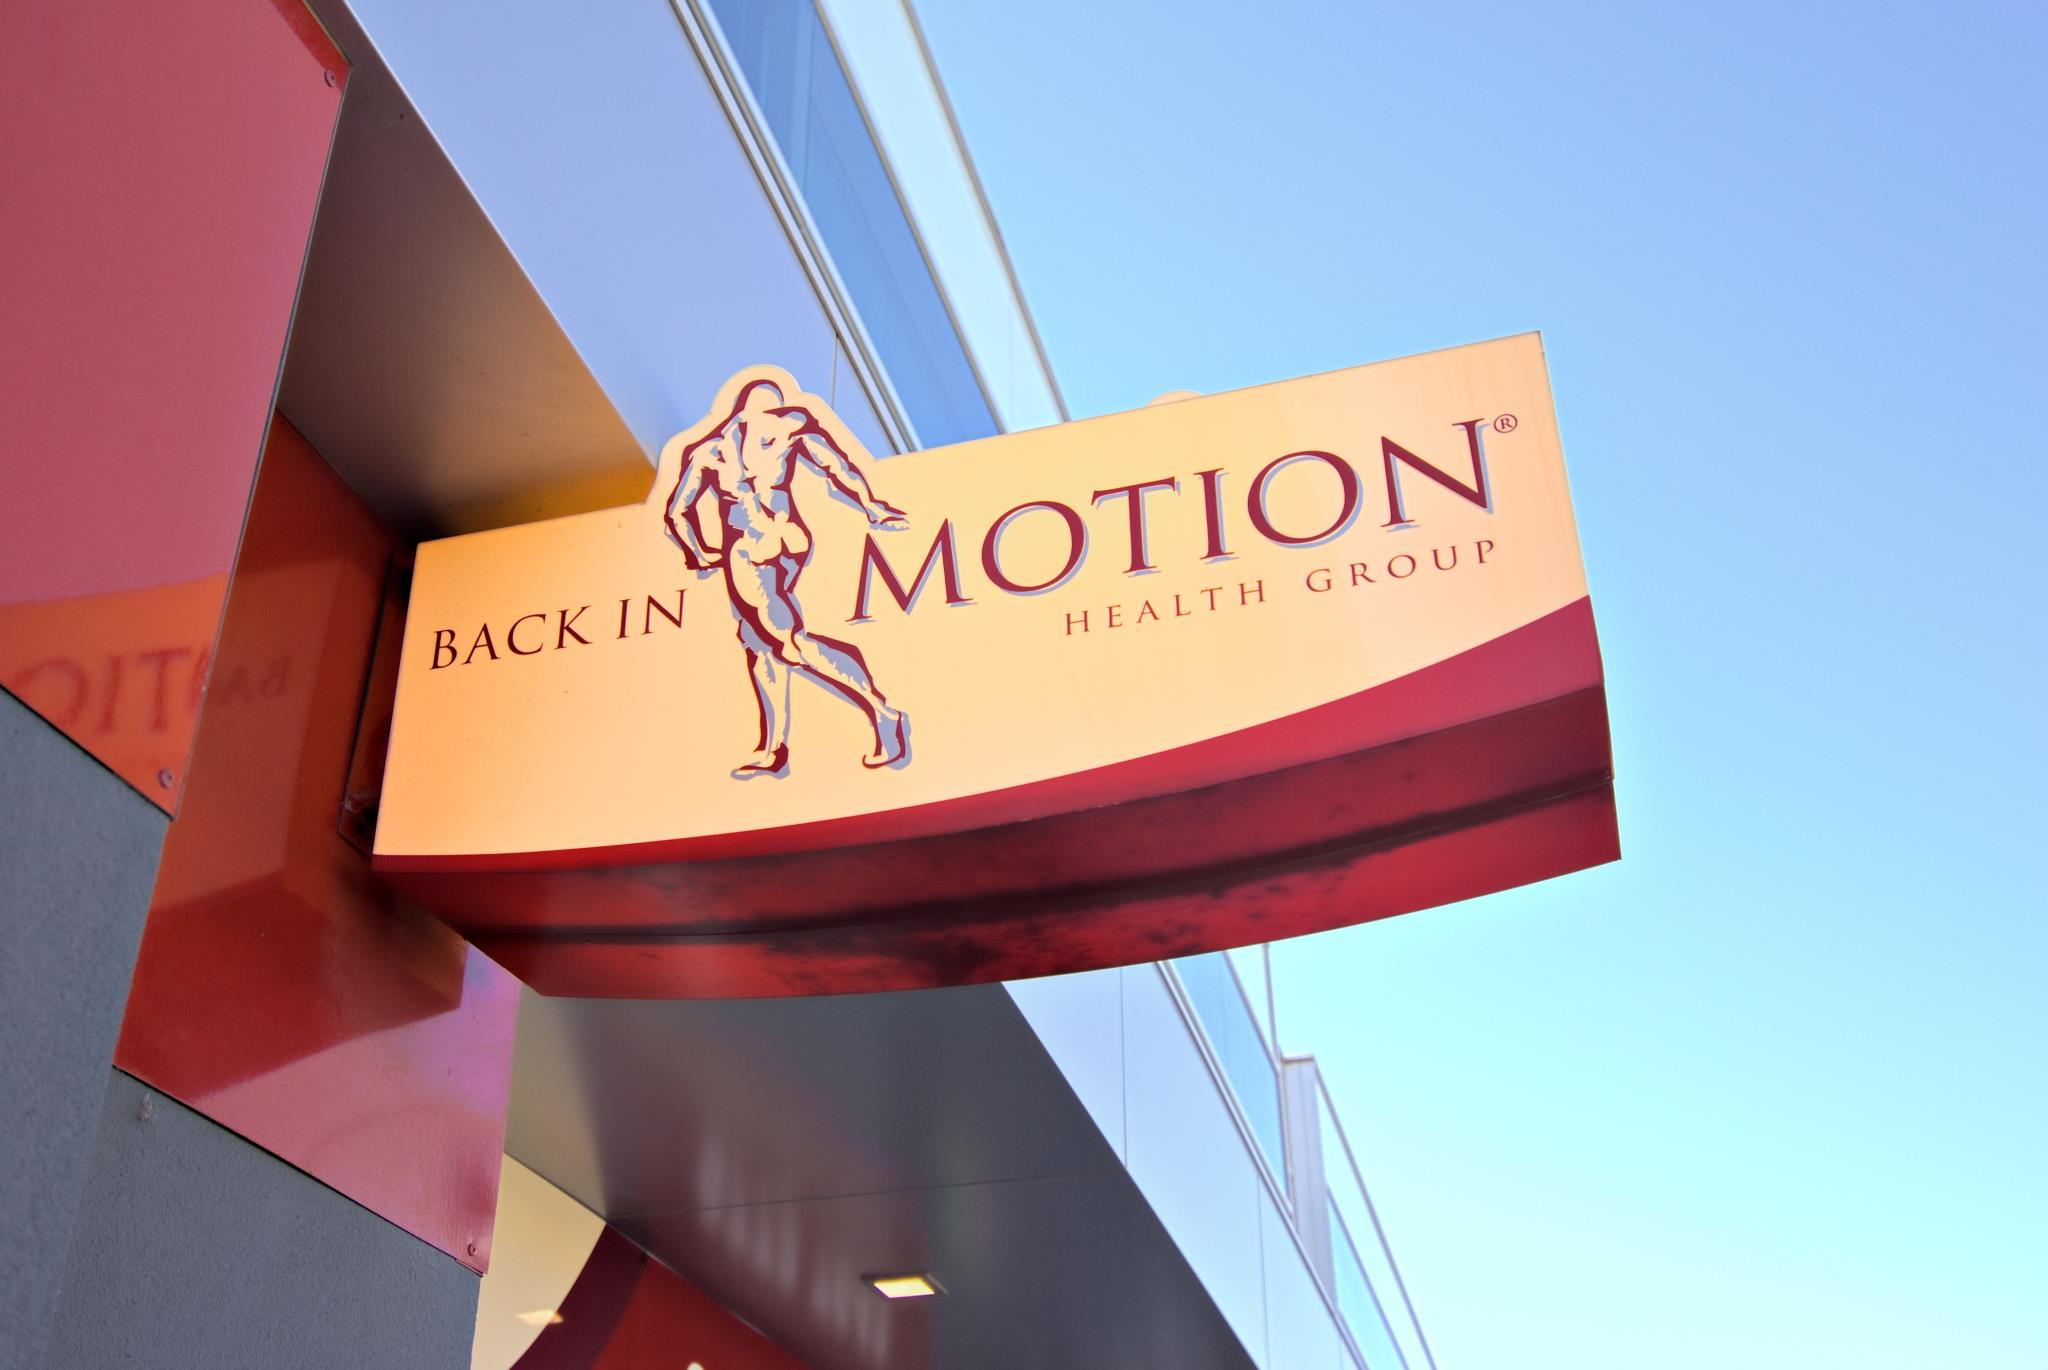 Back in Motion Health Group of Physiotherapists